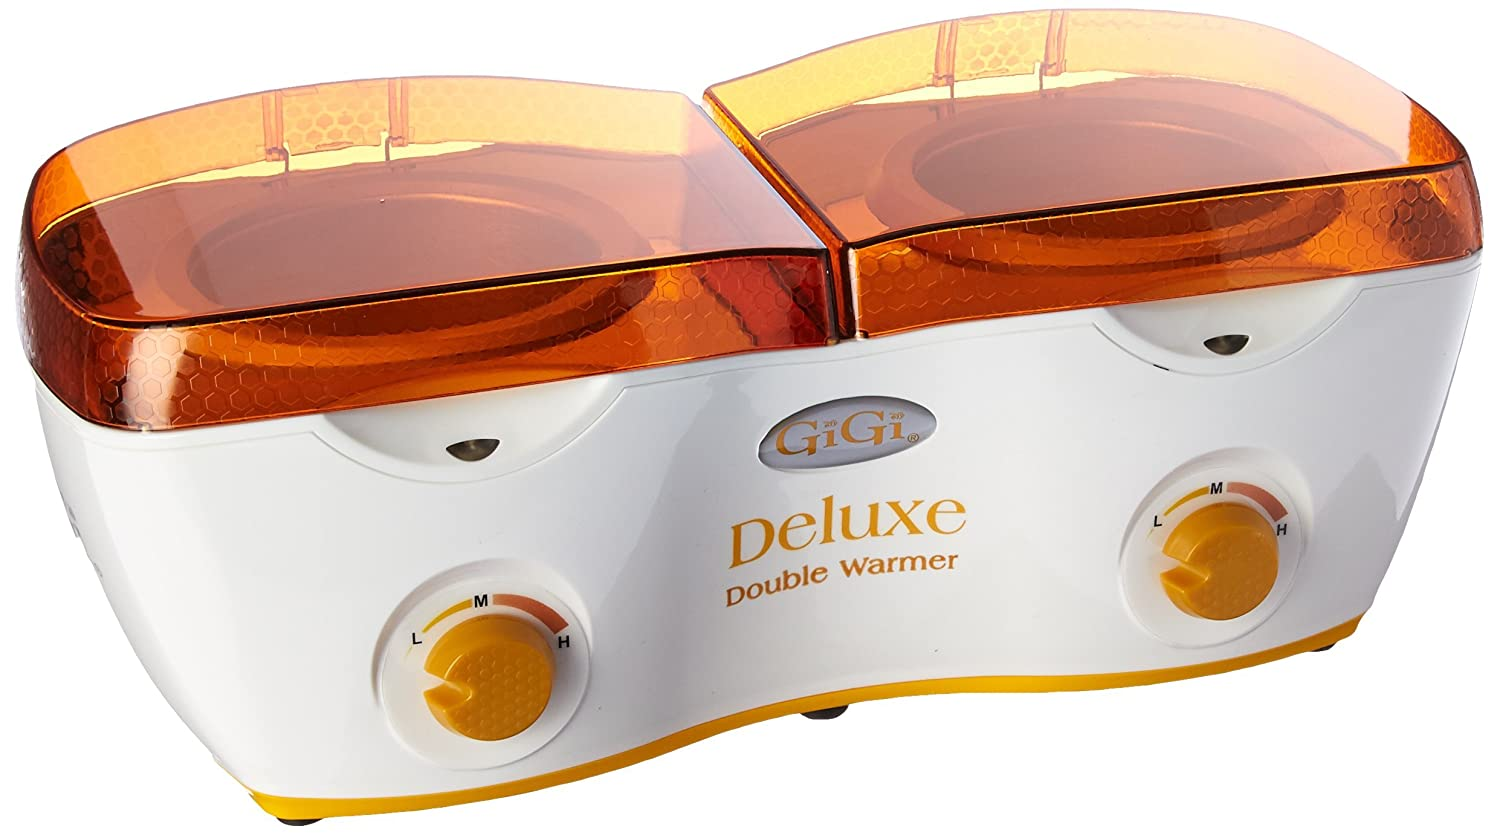 GIGI deluxe double warmer, 14 ounce, White/Orange 0230